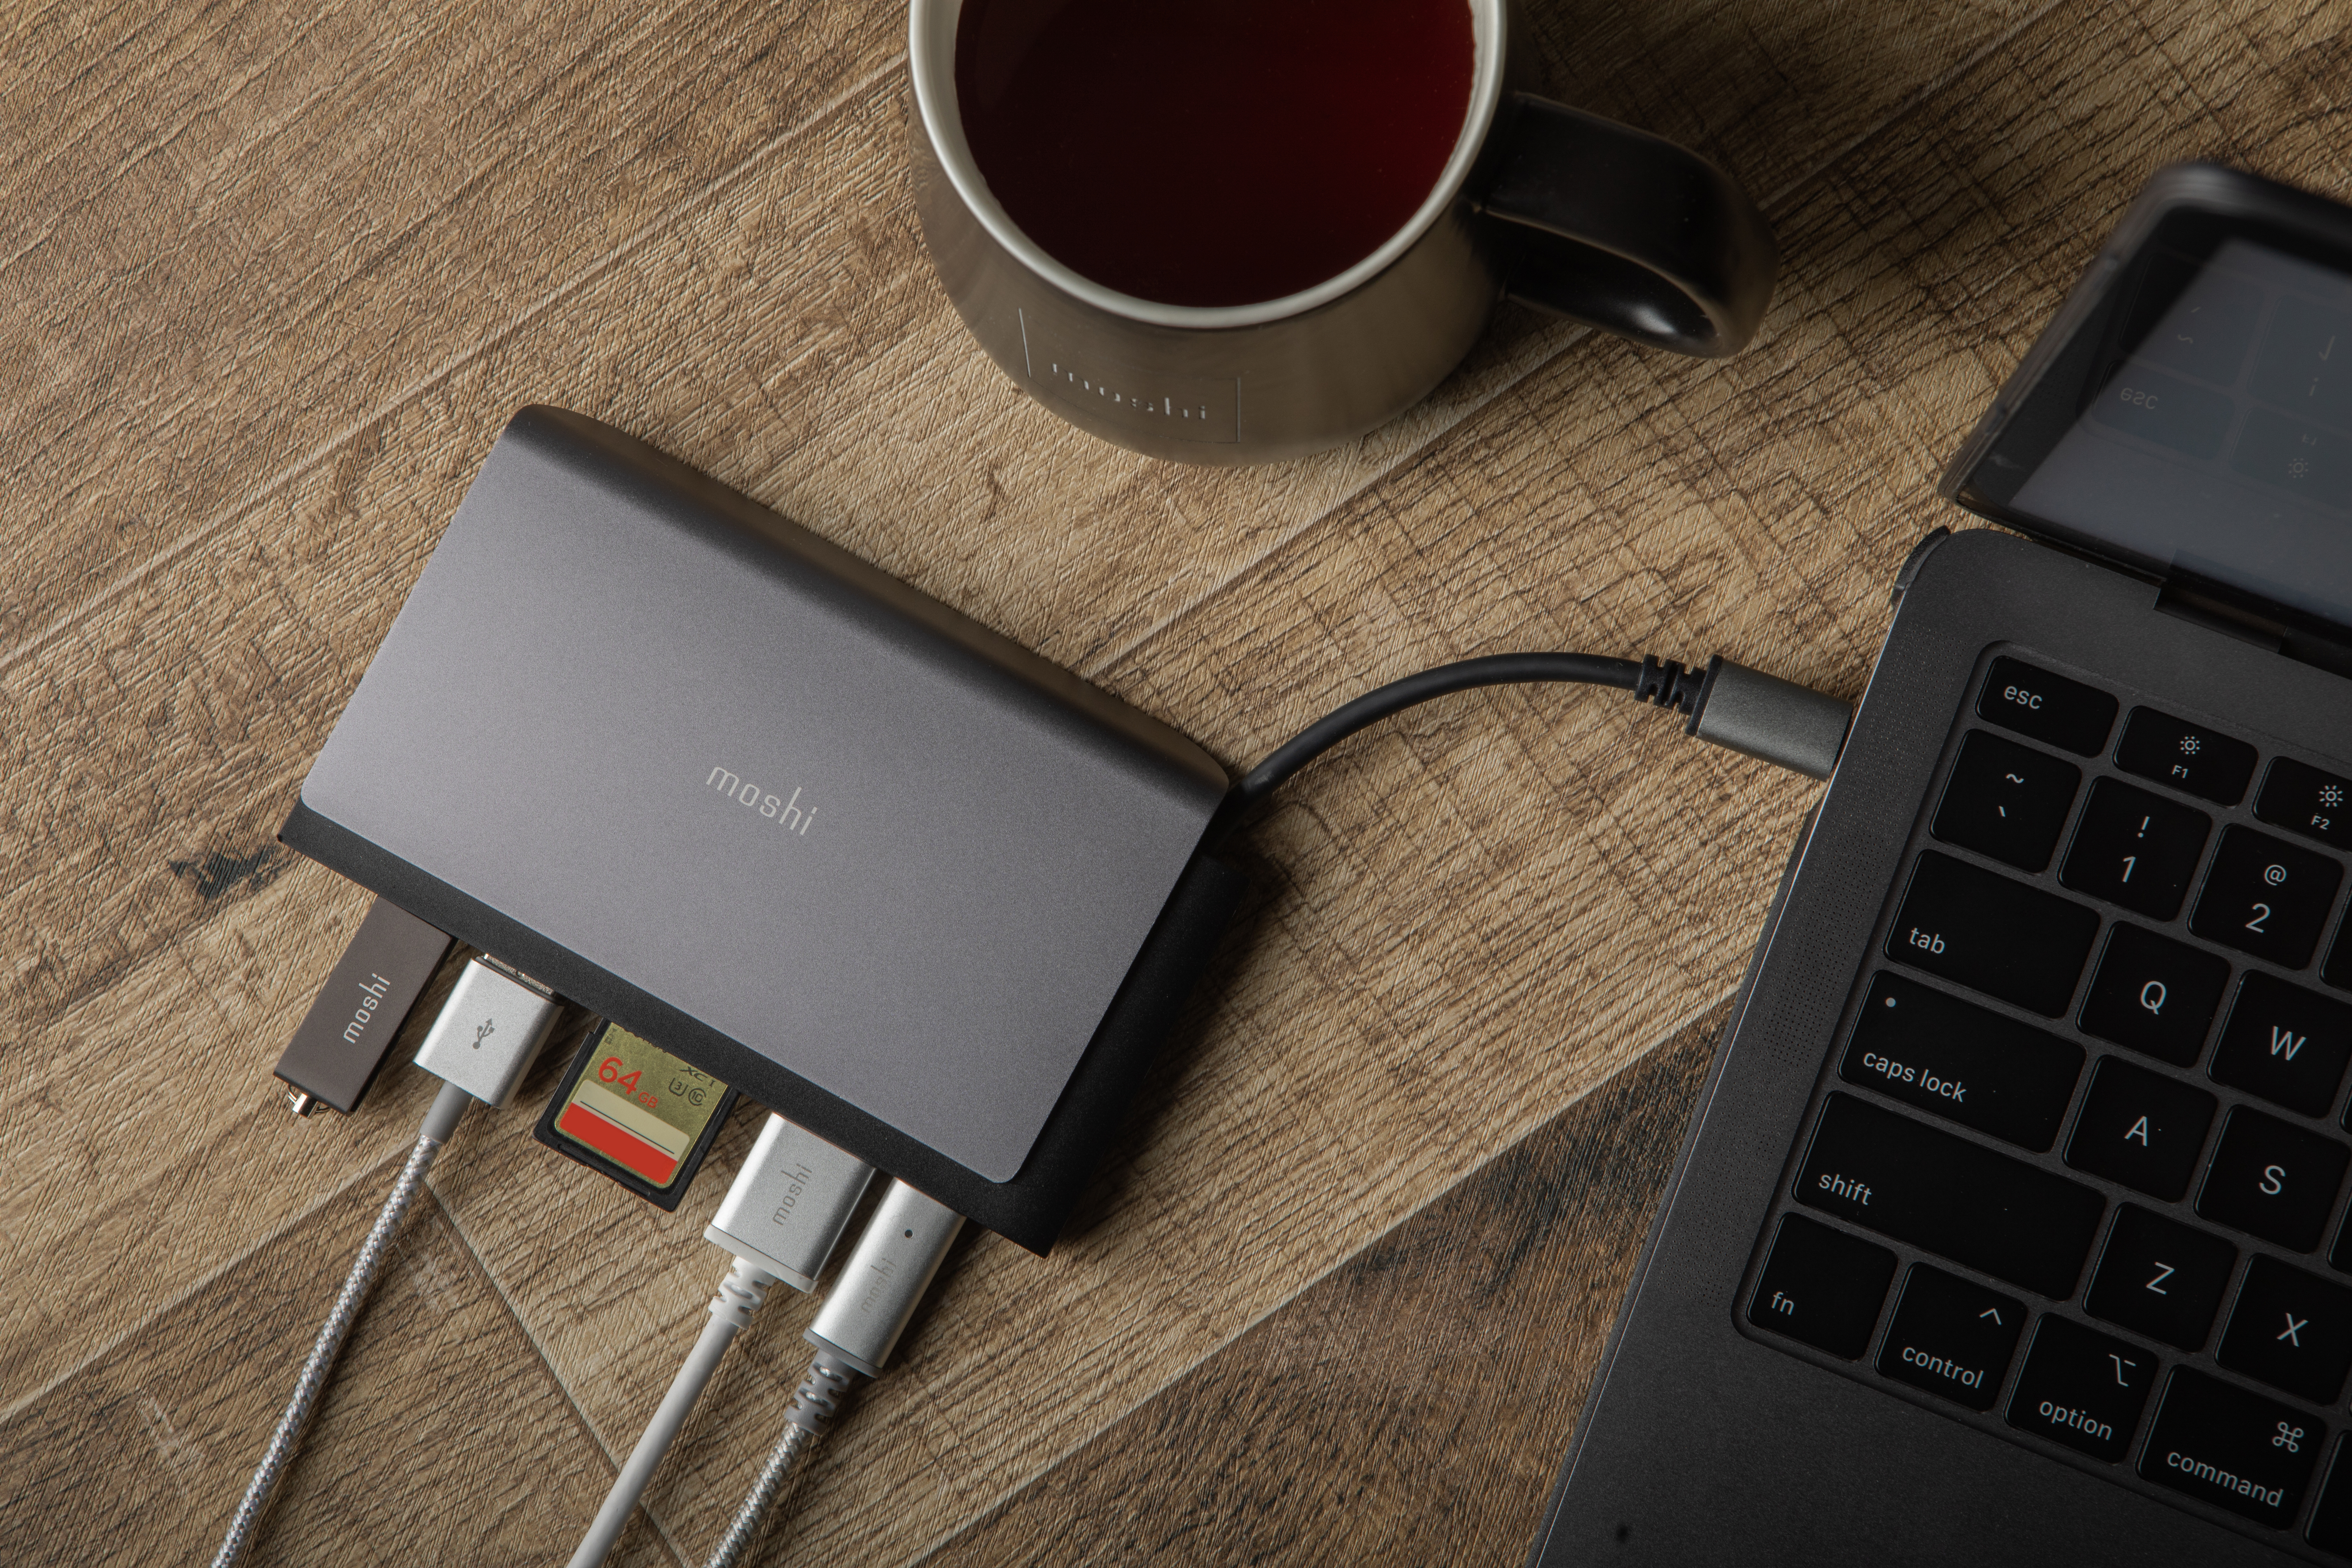 A Moshi Symbus Mini USB-C hub connected to a laptop with various cables and peripherals connected to it